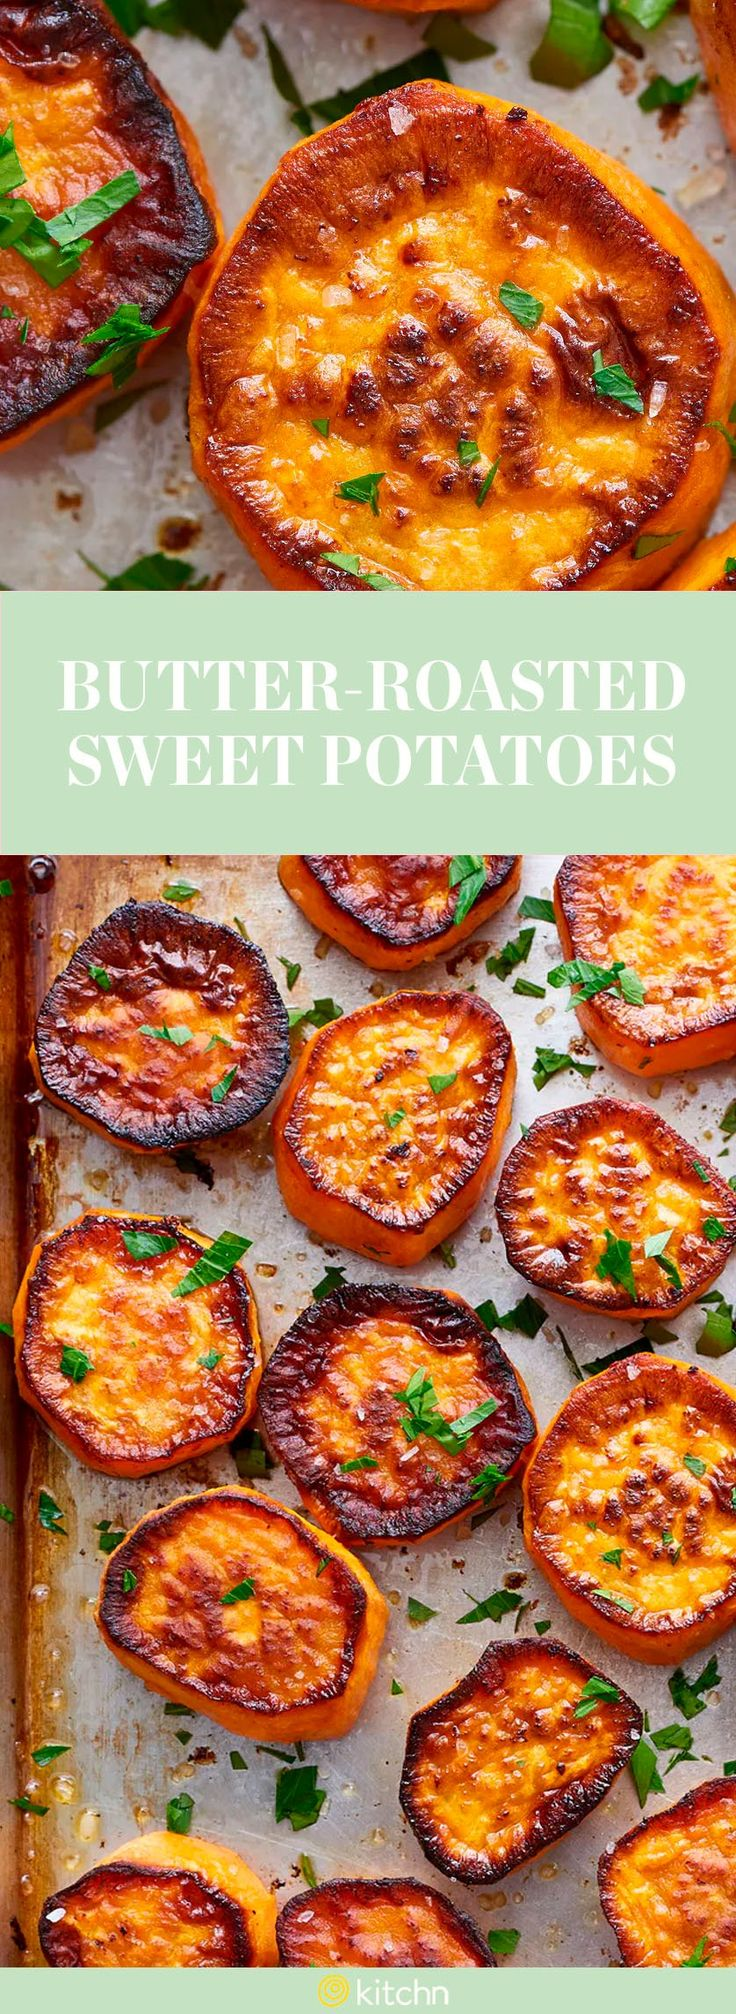 These butter-roasted sweet potatoes are a spotlight side dish you'll want to make this fall. These sweet potatoes get their boosted flavor from the way they are roasted. This way, you can create a deep caramelized look for your sweet potatoes. This dish calls for large sweet potatoes, unsalted butter, and kosher salt.